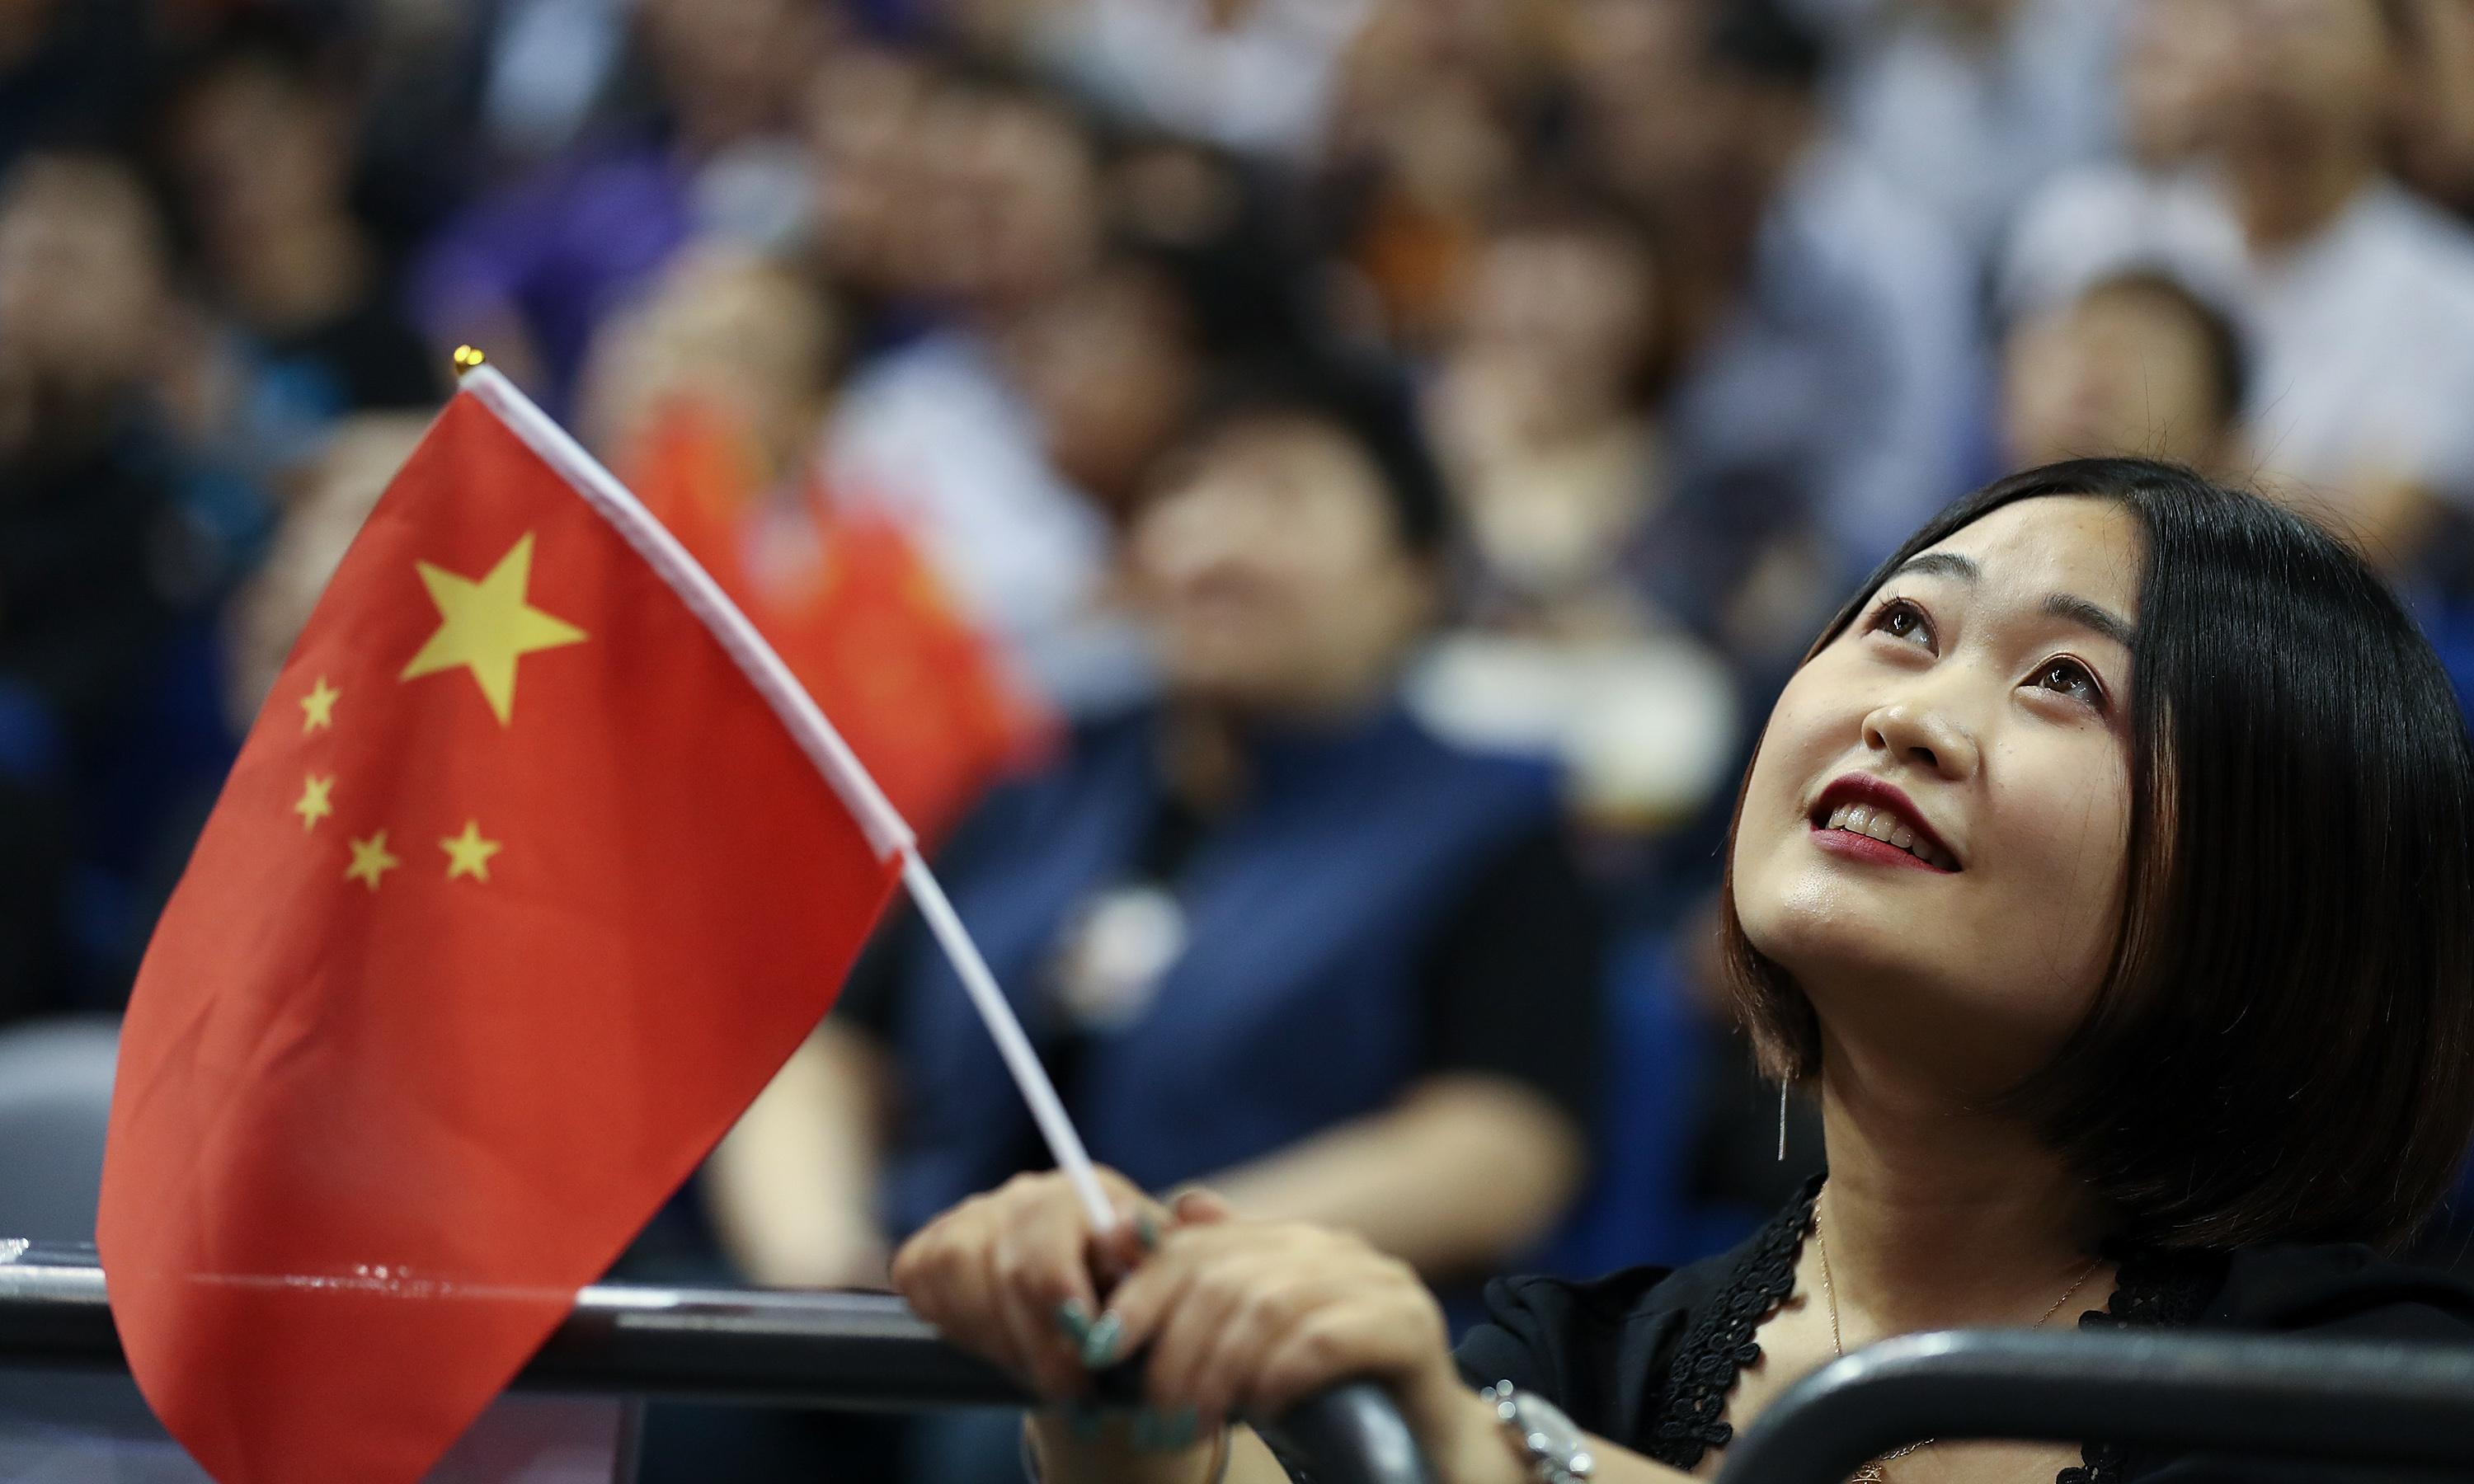 The Guardian view on China and basketball: power games